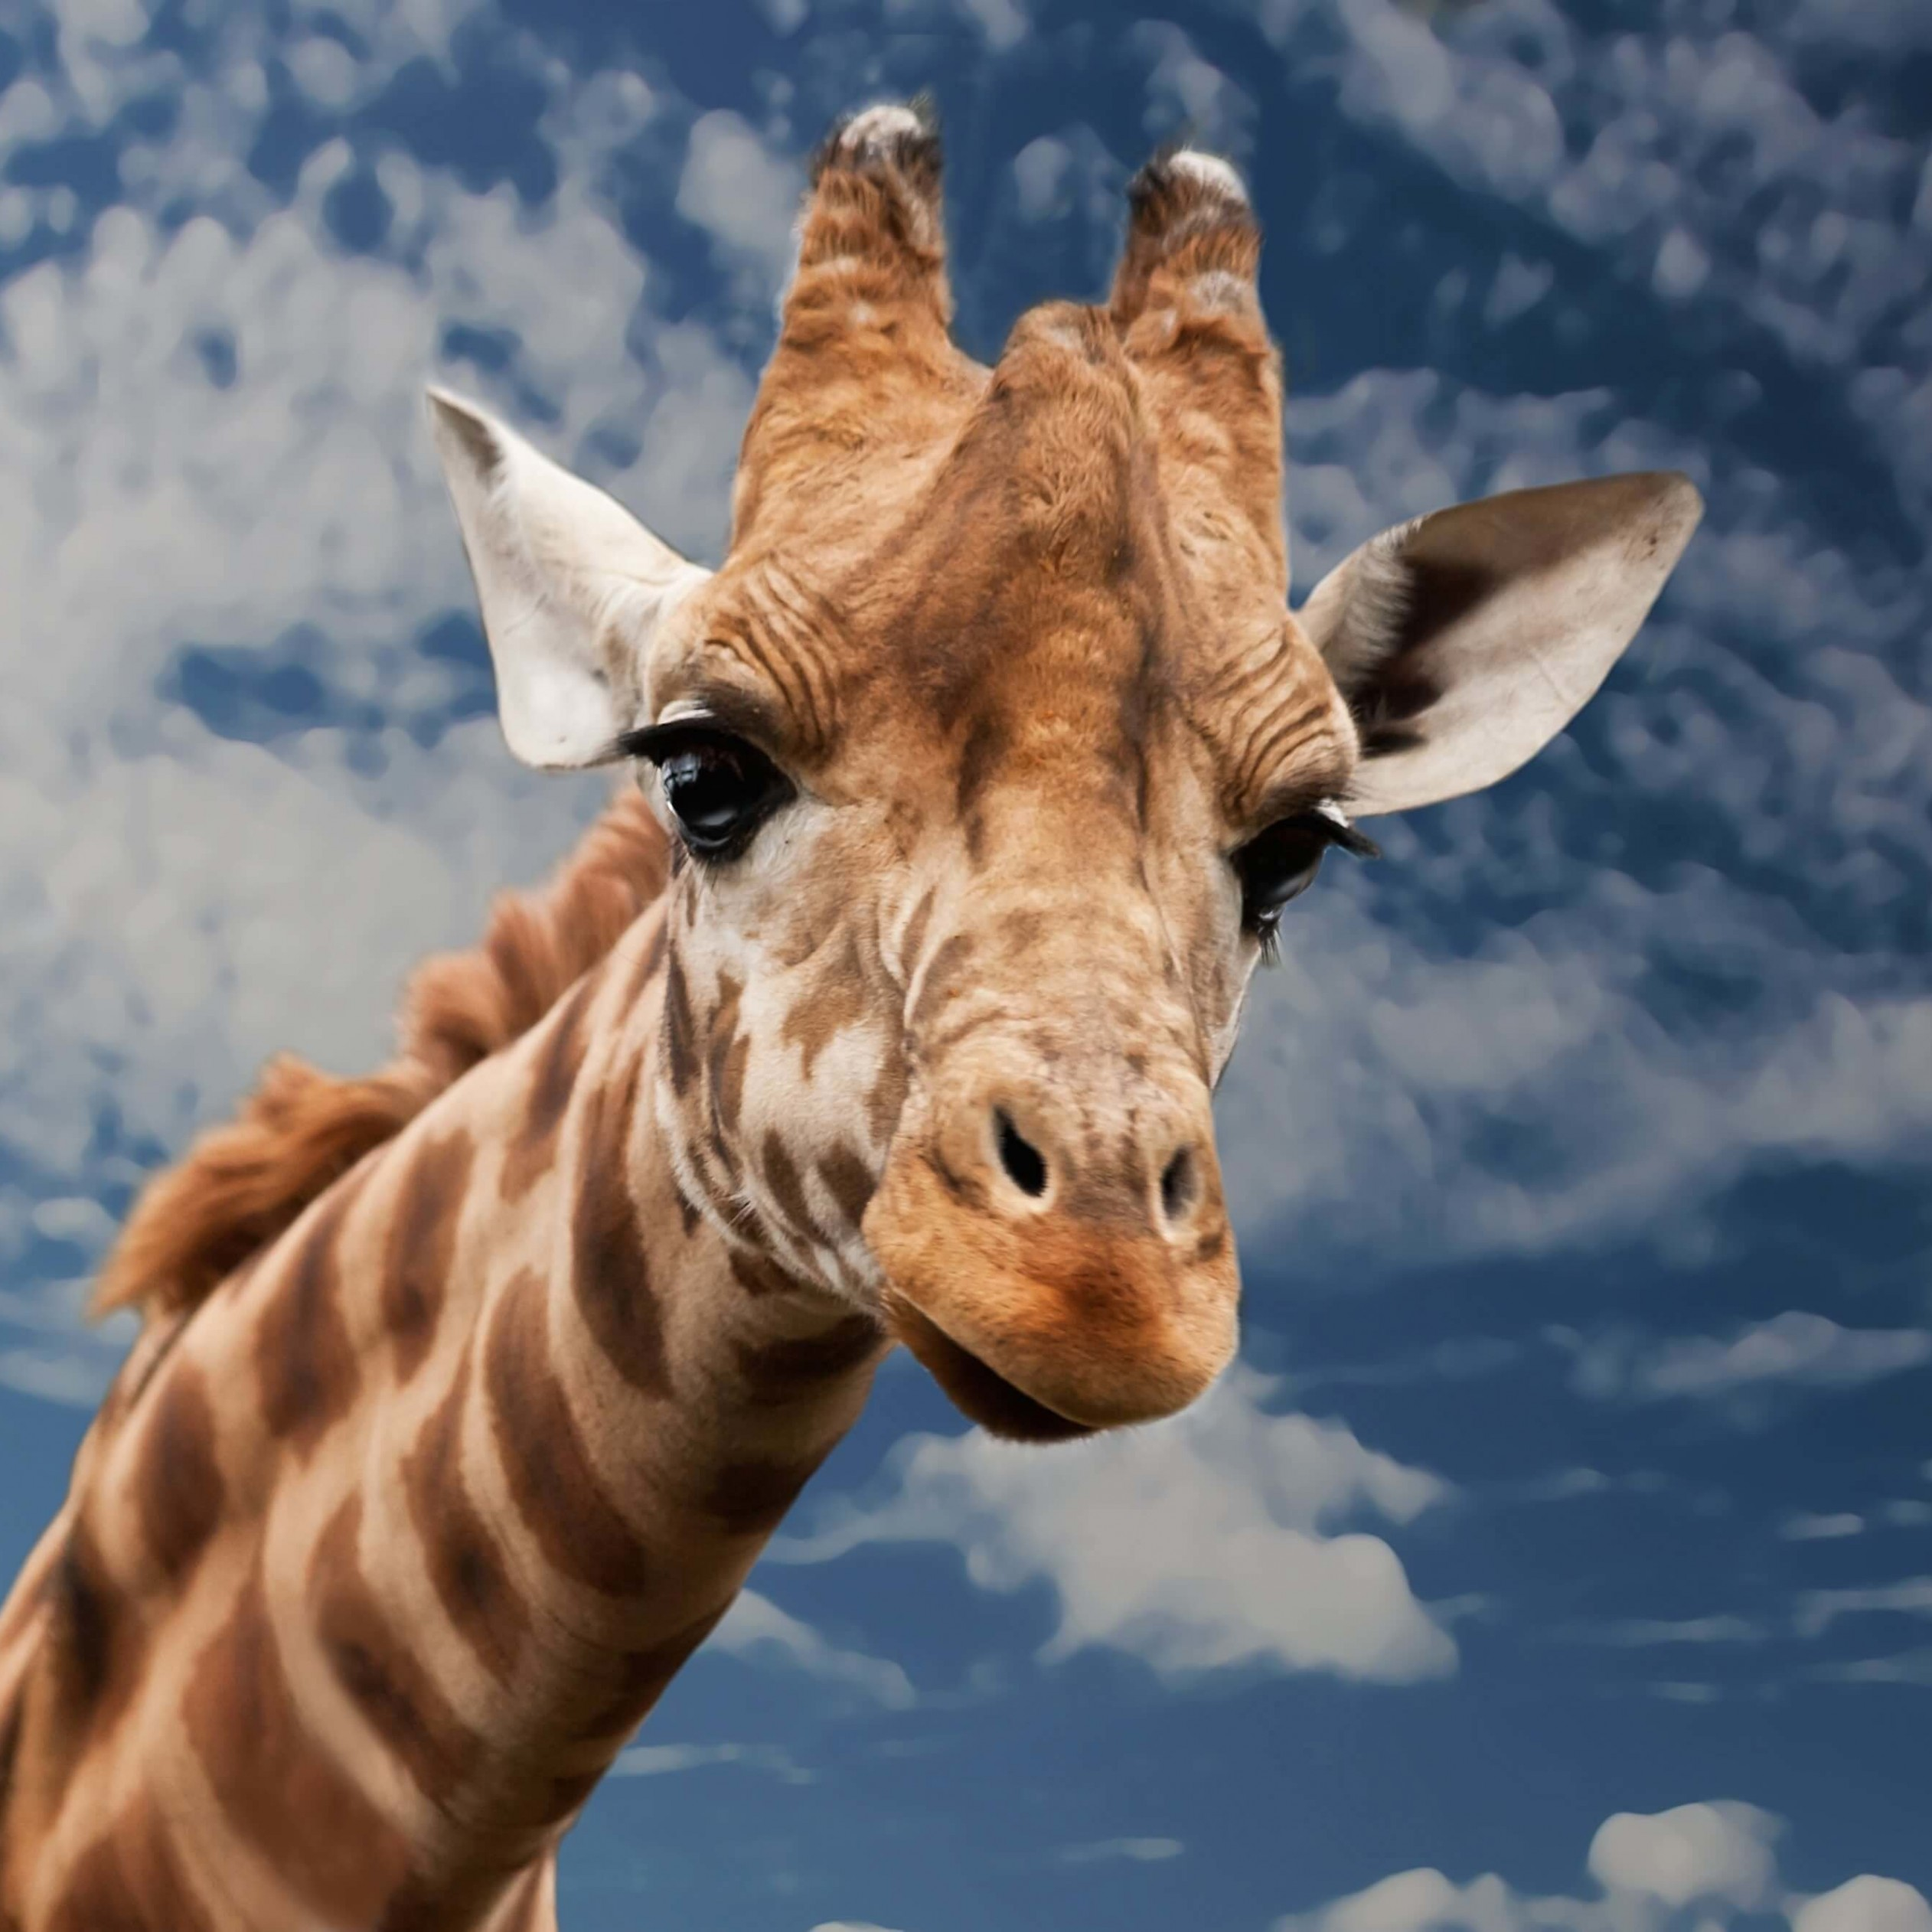 Funny Giraffe Wallpaper for Apple iPad Air